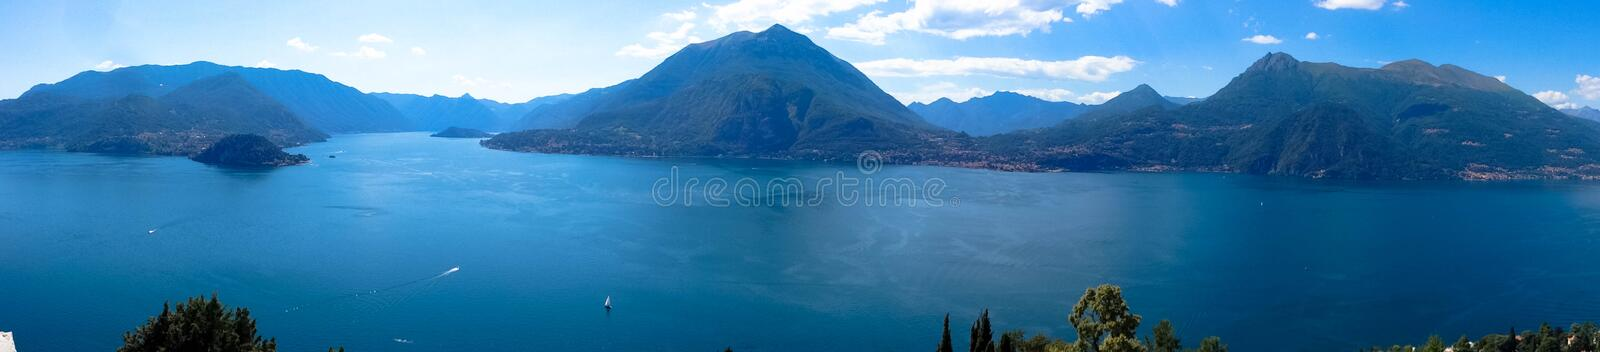 The beautiful Lake Como is surrounded by the high mountains in Italy. royalty free stock image